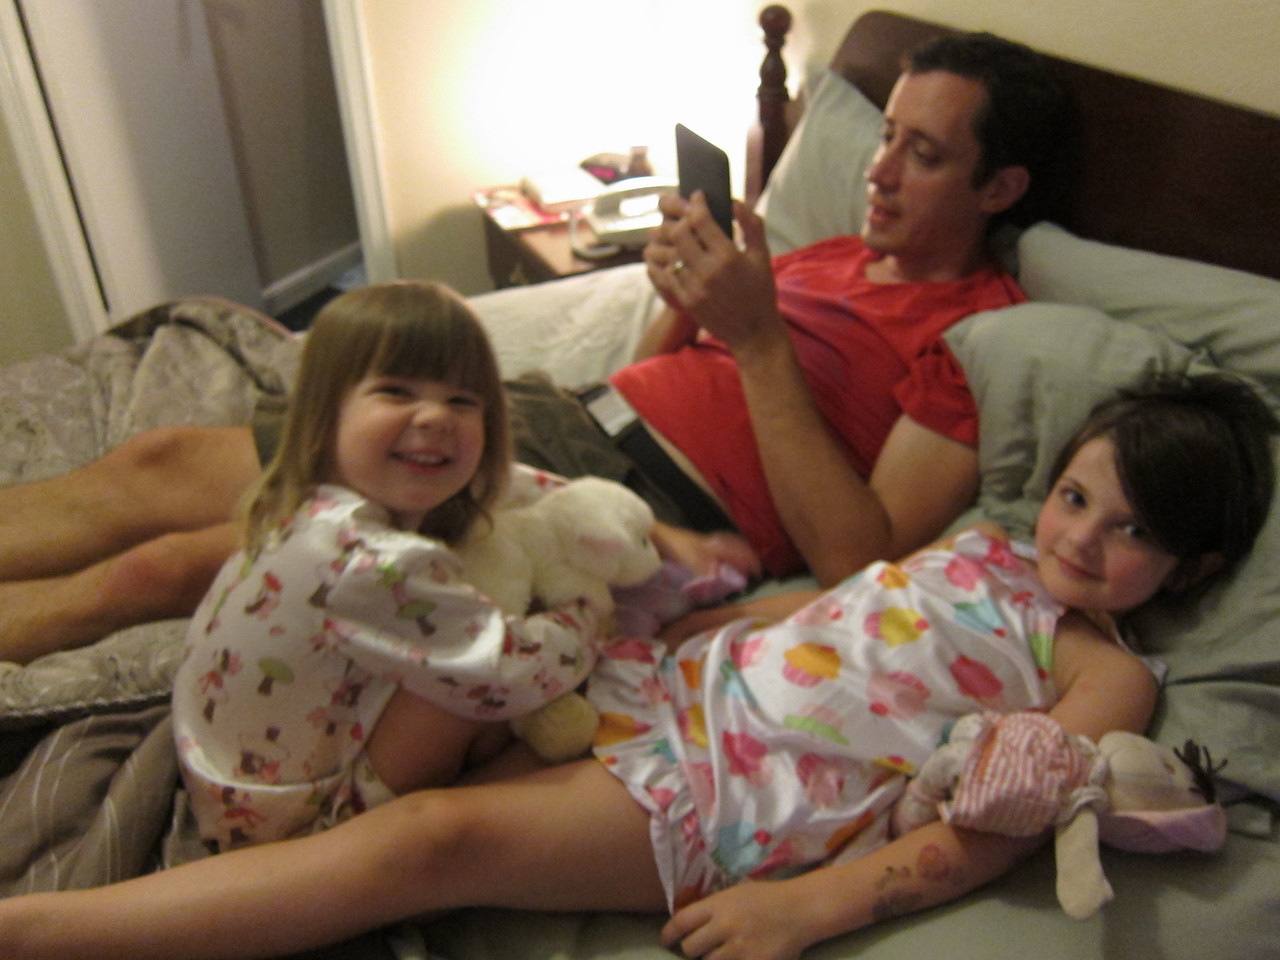 A bedtime story before we attempt Operation bed for Etta